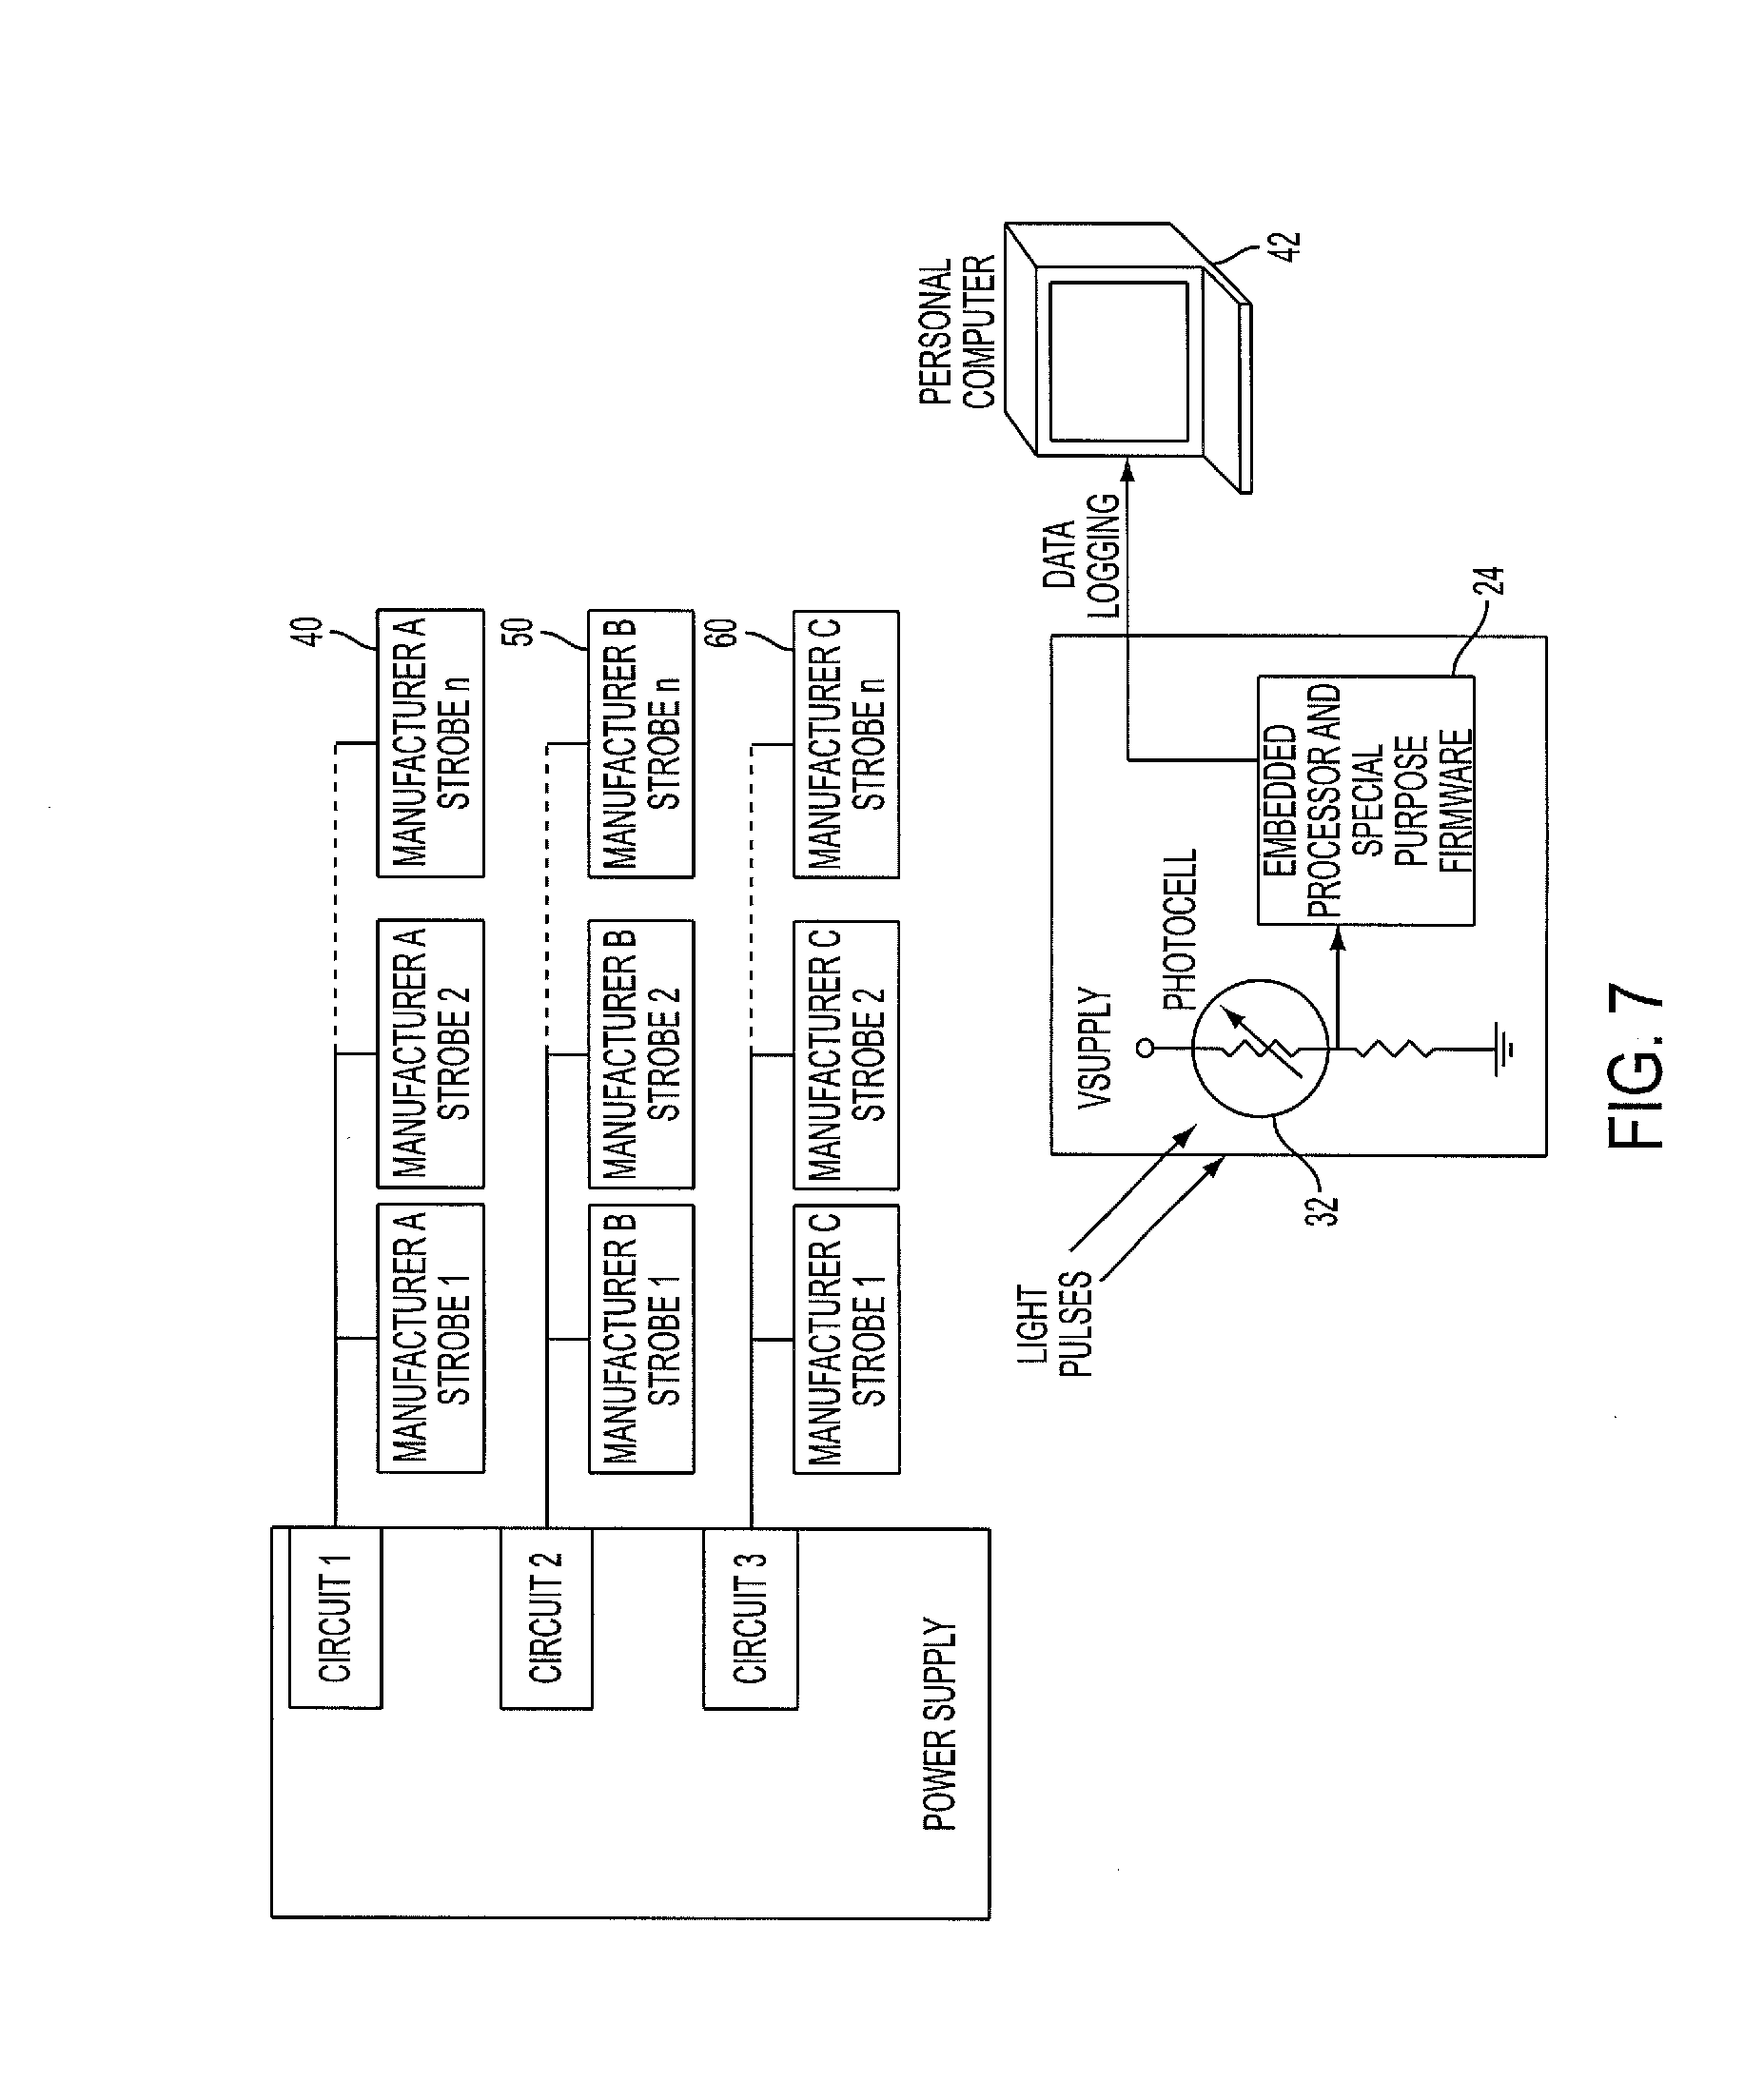 Patent Us20120212055 Multi Protocol Fire Alarm Strobe Schematic Of Basic Circuit Drawing